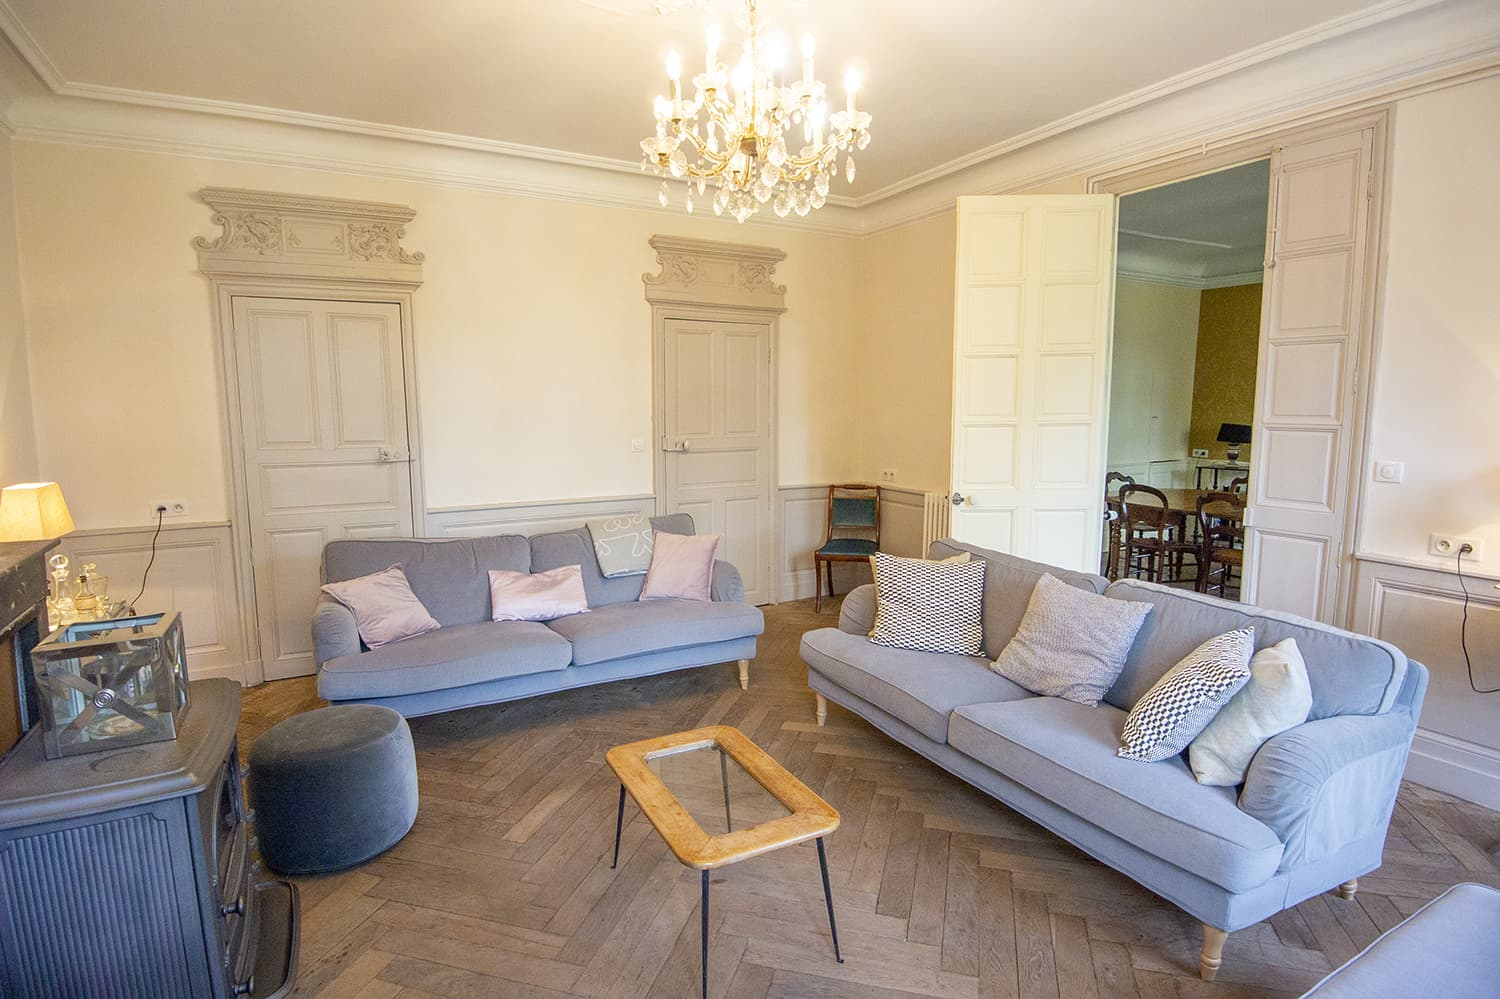 Living room in Bourgogne-Franche-Comté self-catering accommodation